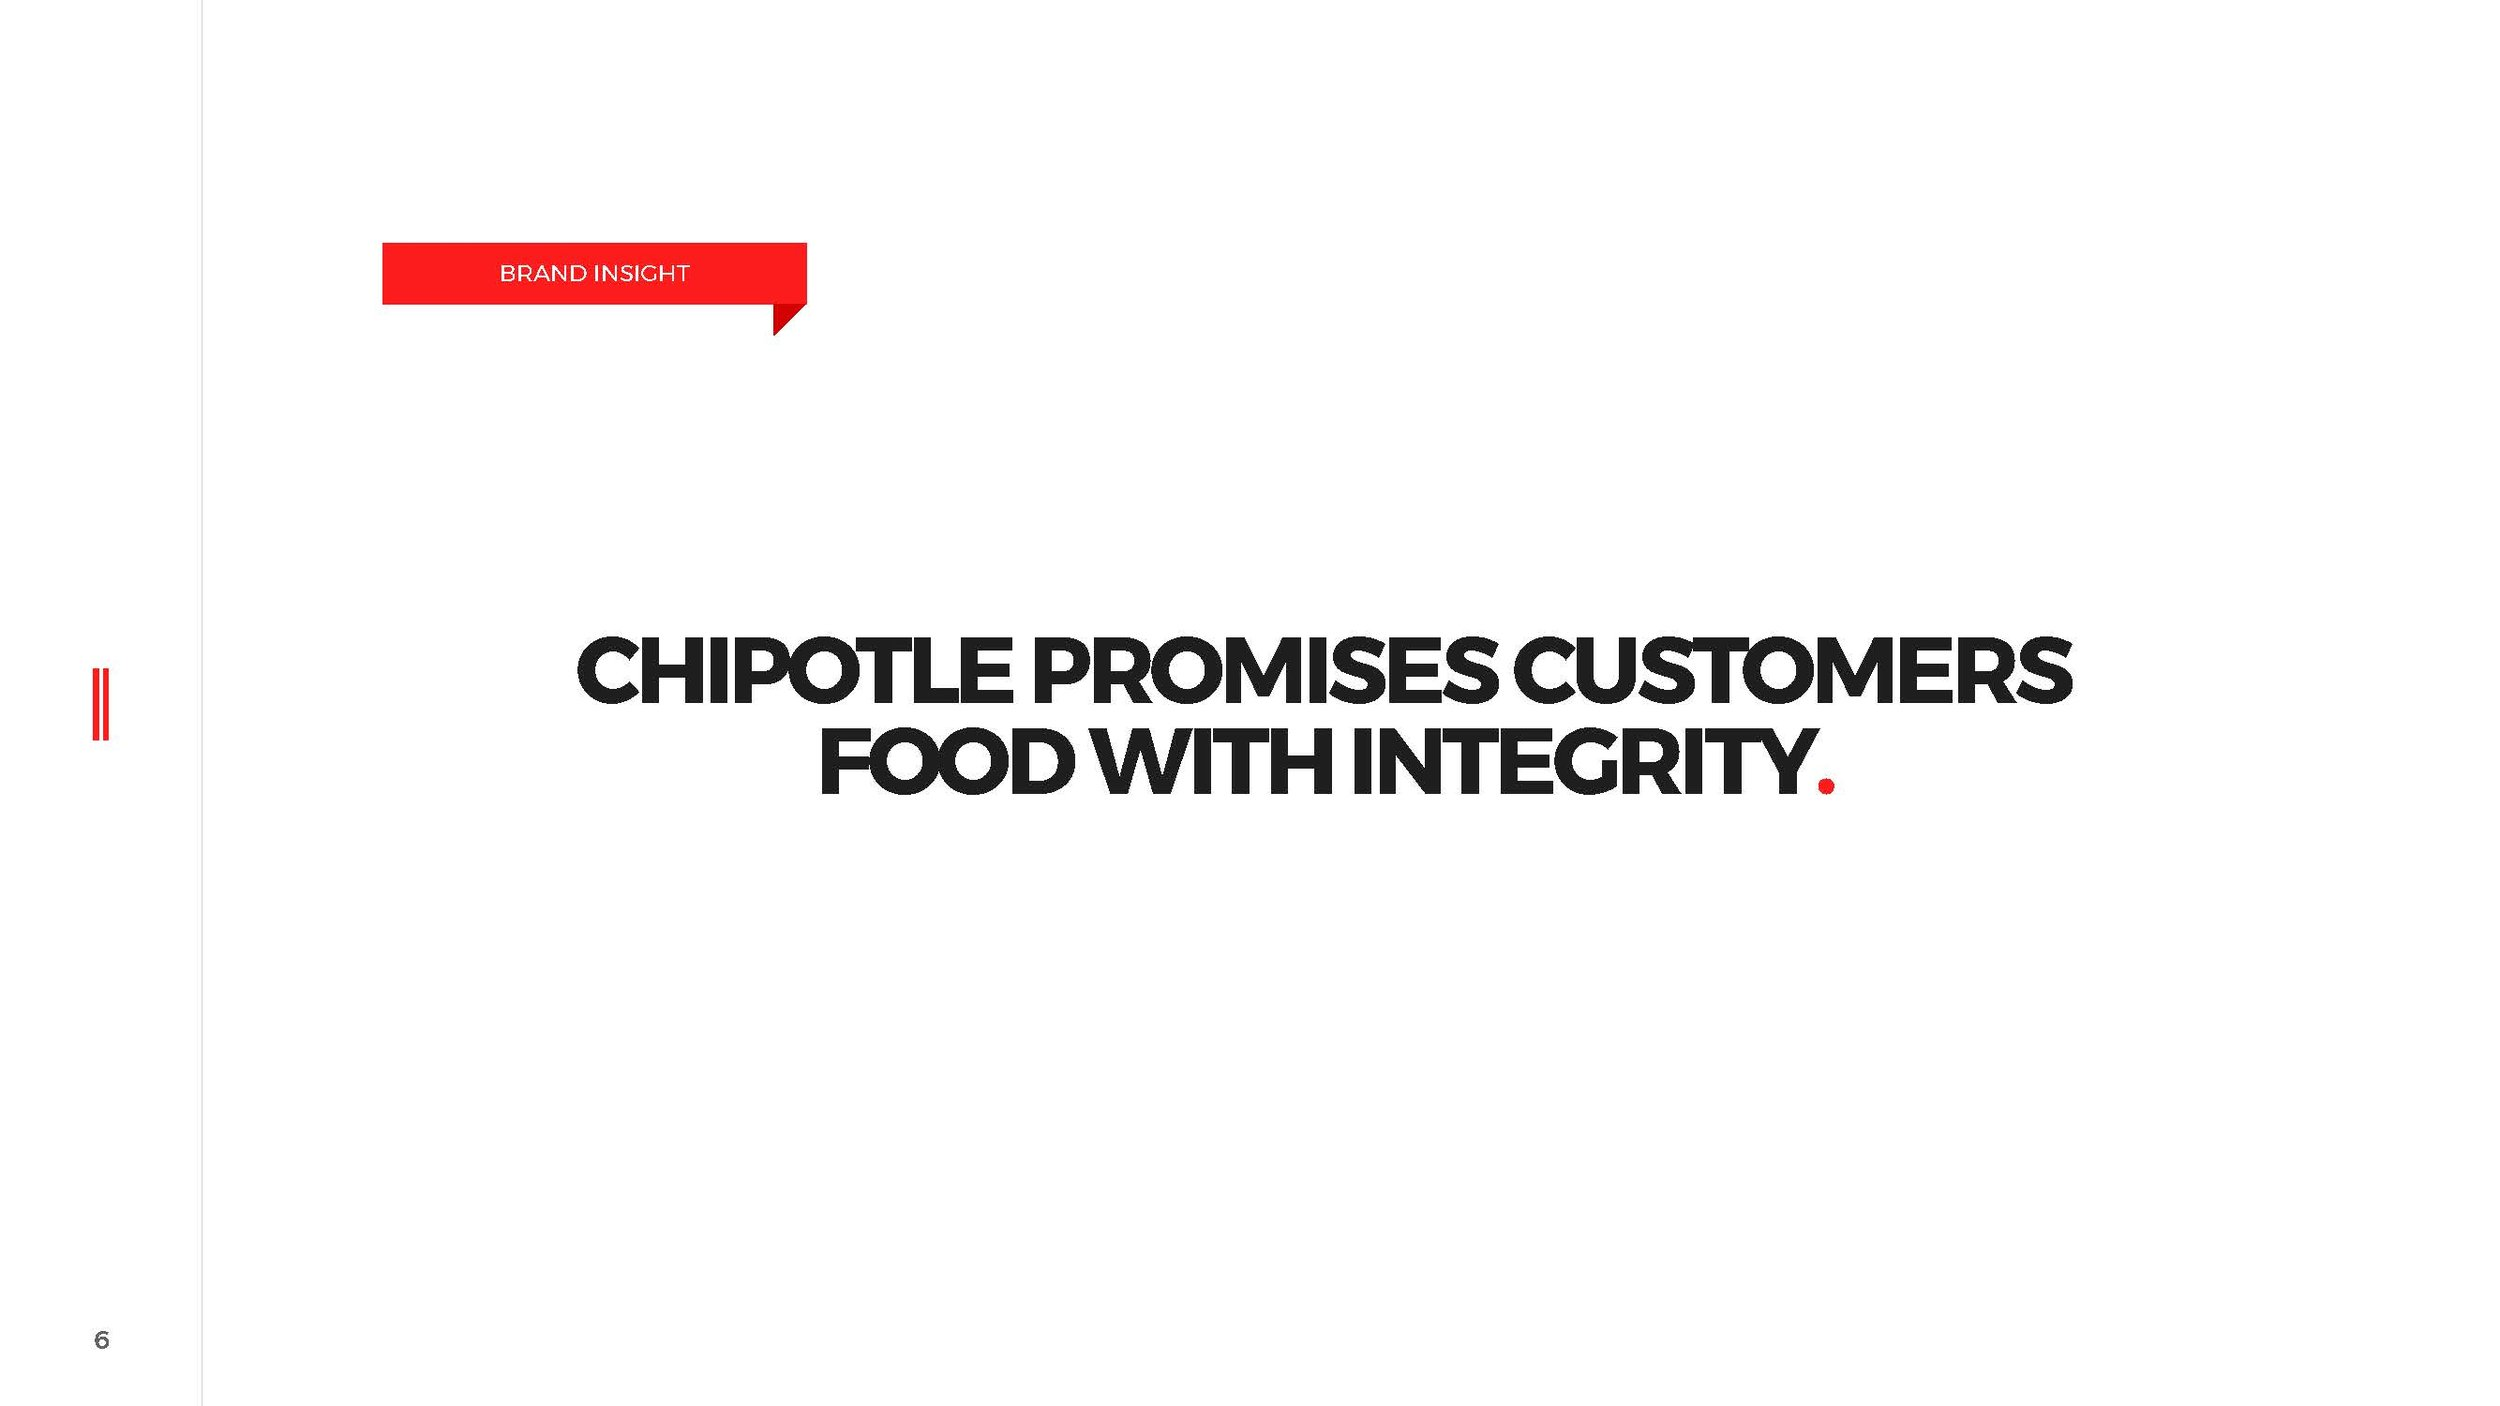 Chipotle Deck 1 Images_Page_06.jpg